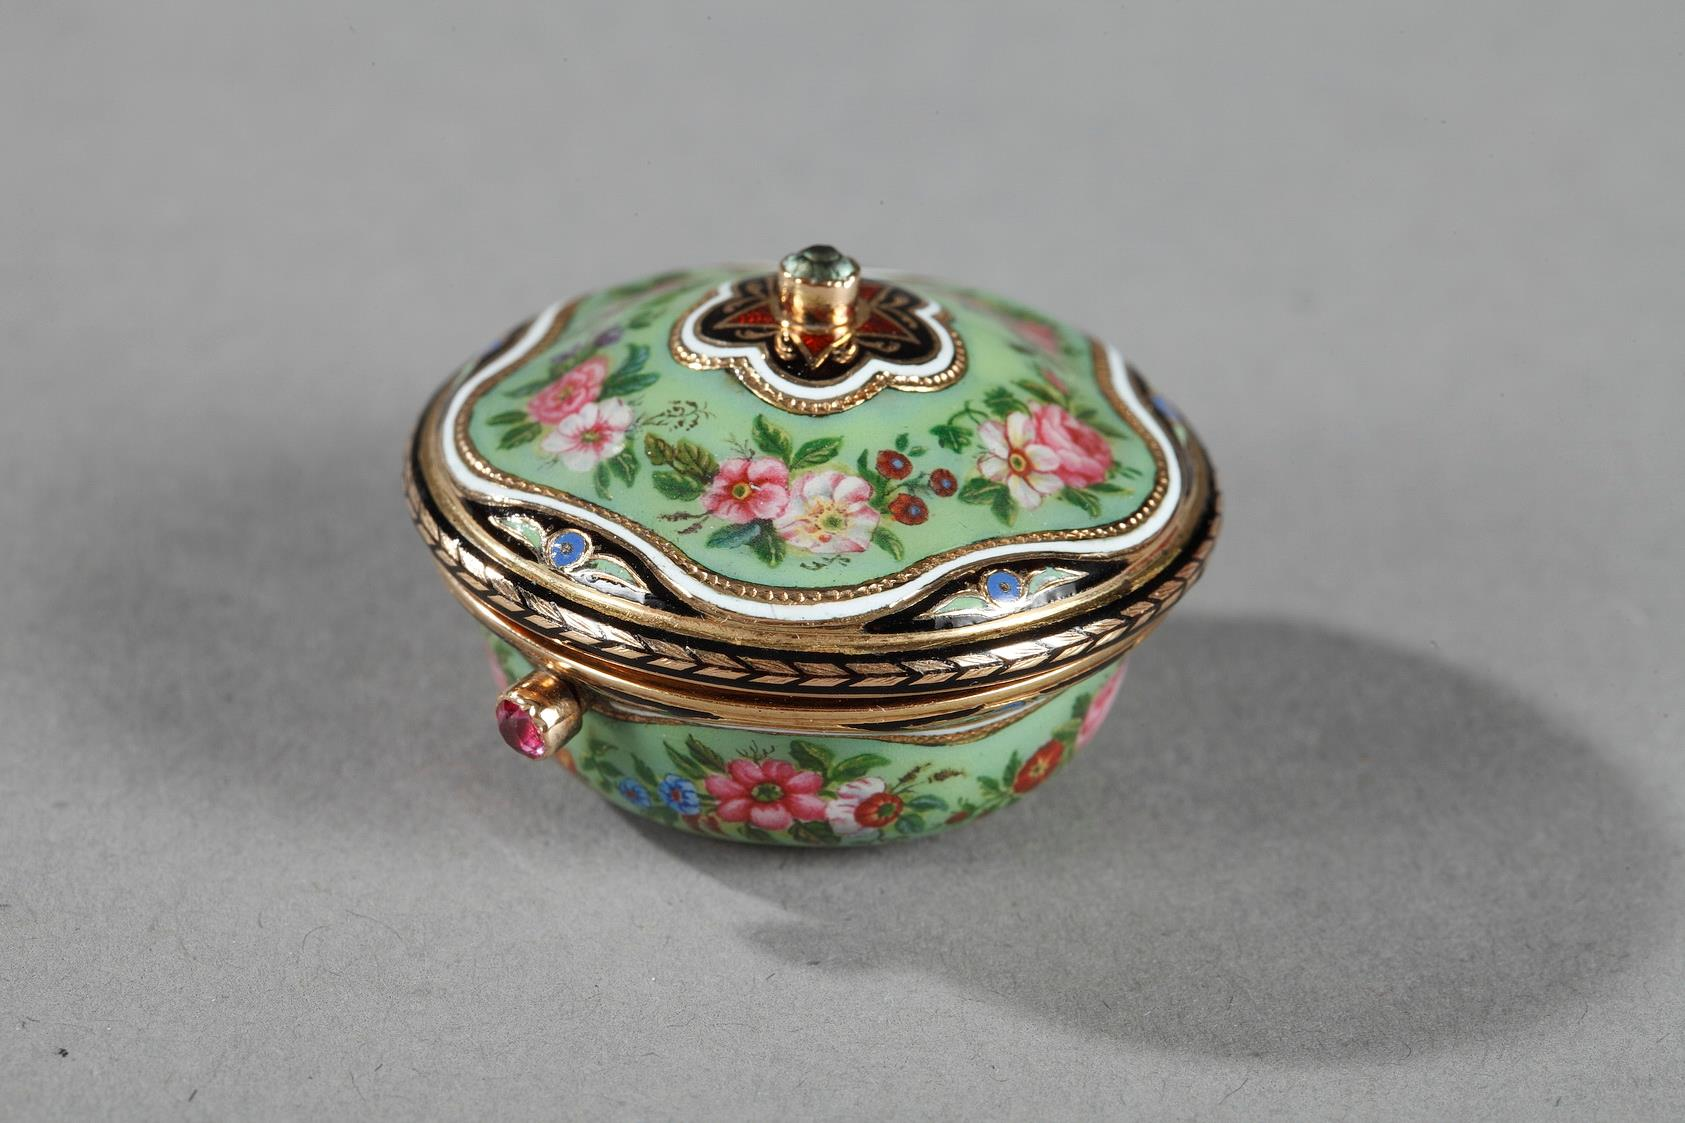 VINAIGRETTE IN GOLD, ENAMEL, AND PRECIOUS STONES.<br/> MID-19TH CENTURY WORK.